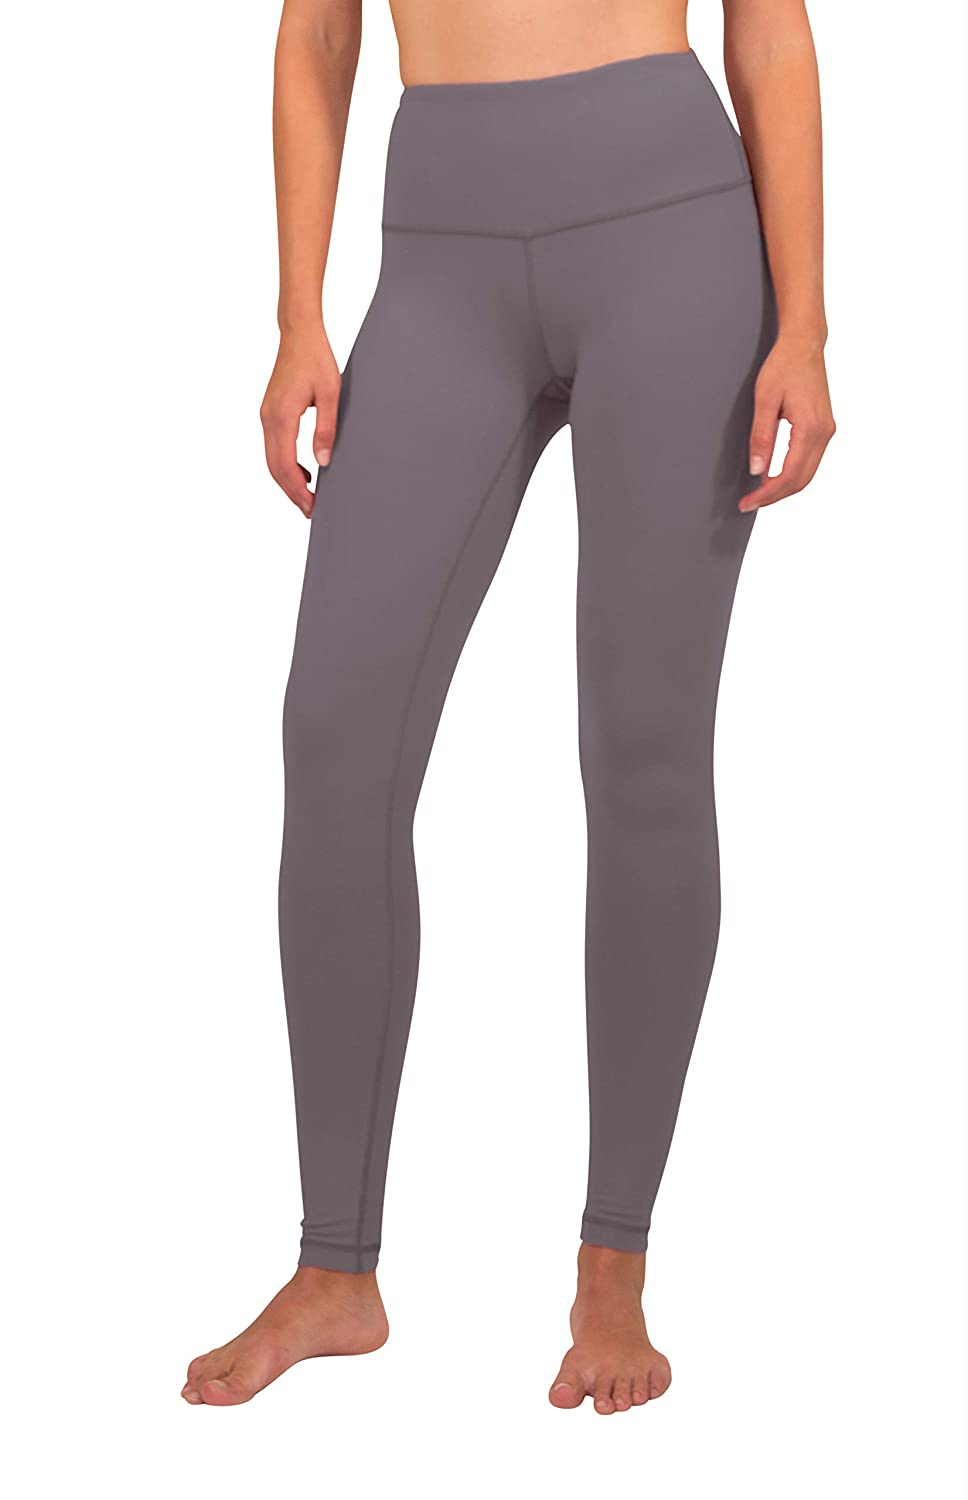 Grey Mauve 90 Degree by Reflex High Waist Ultra Compression Leggings for Women